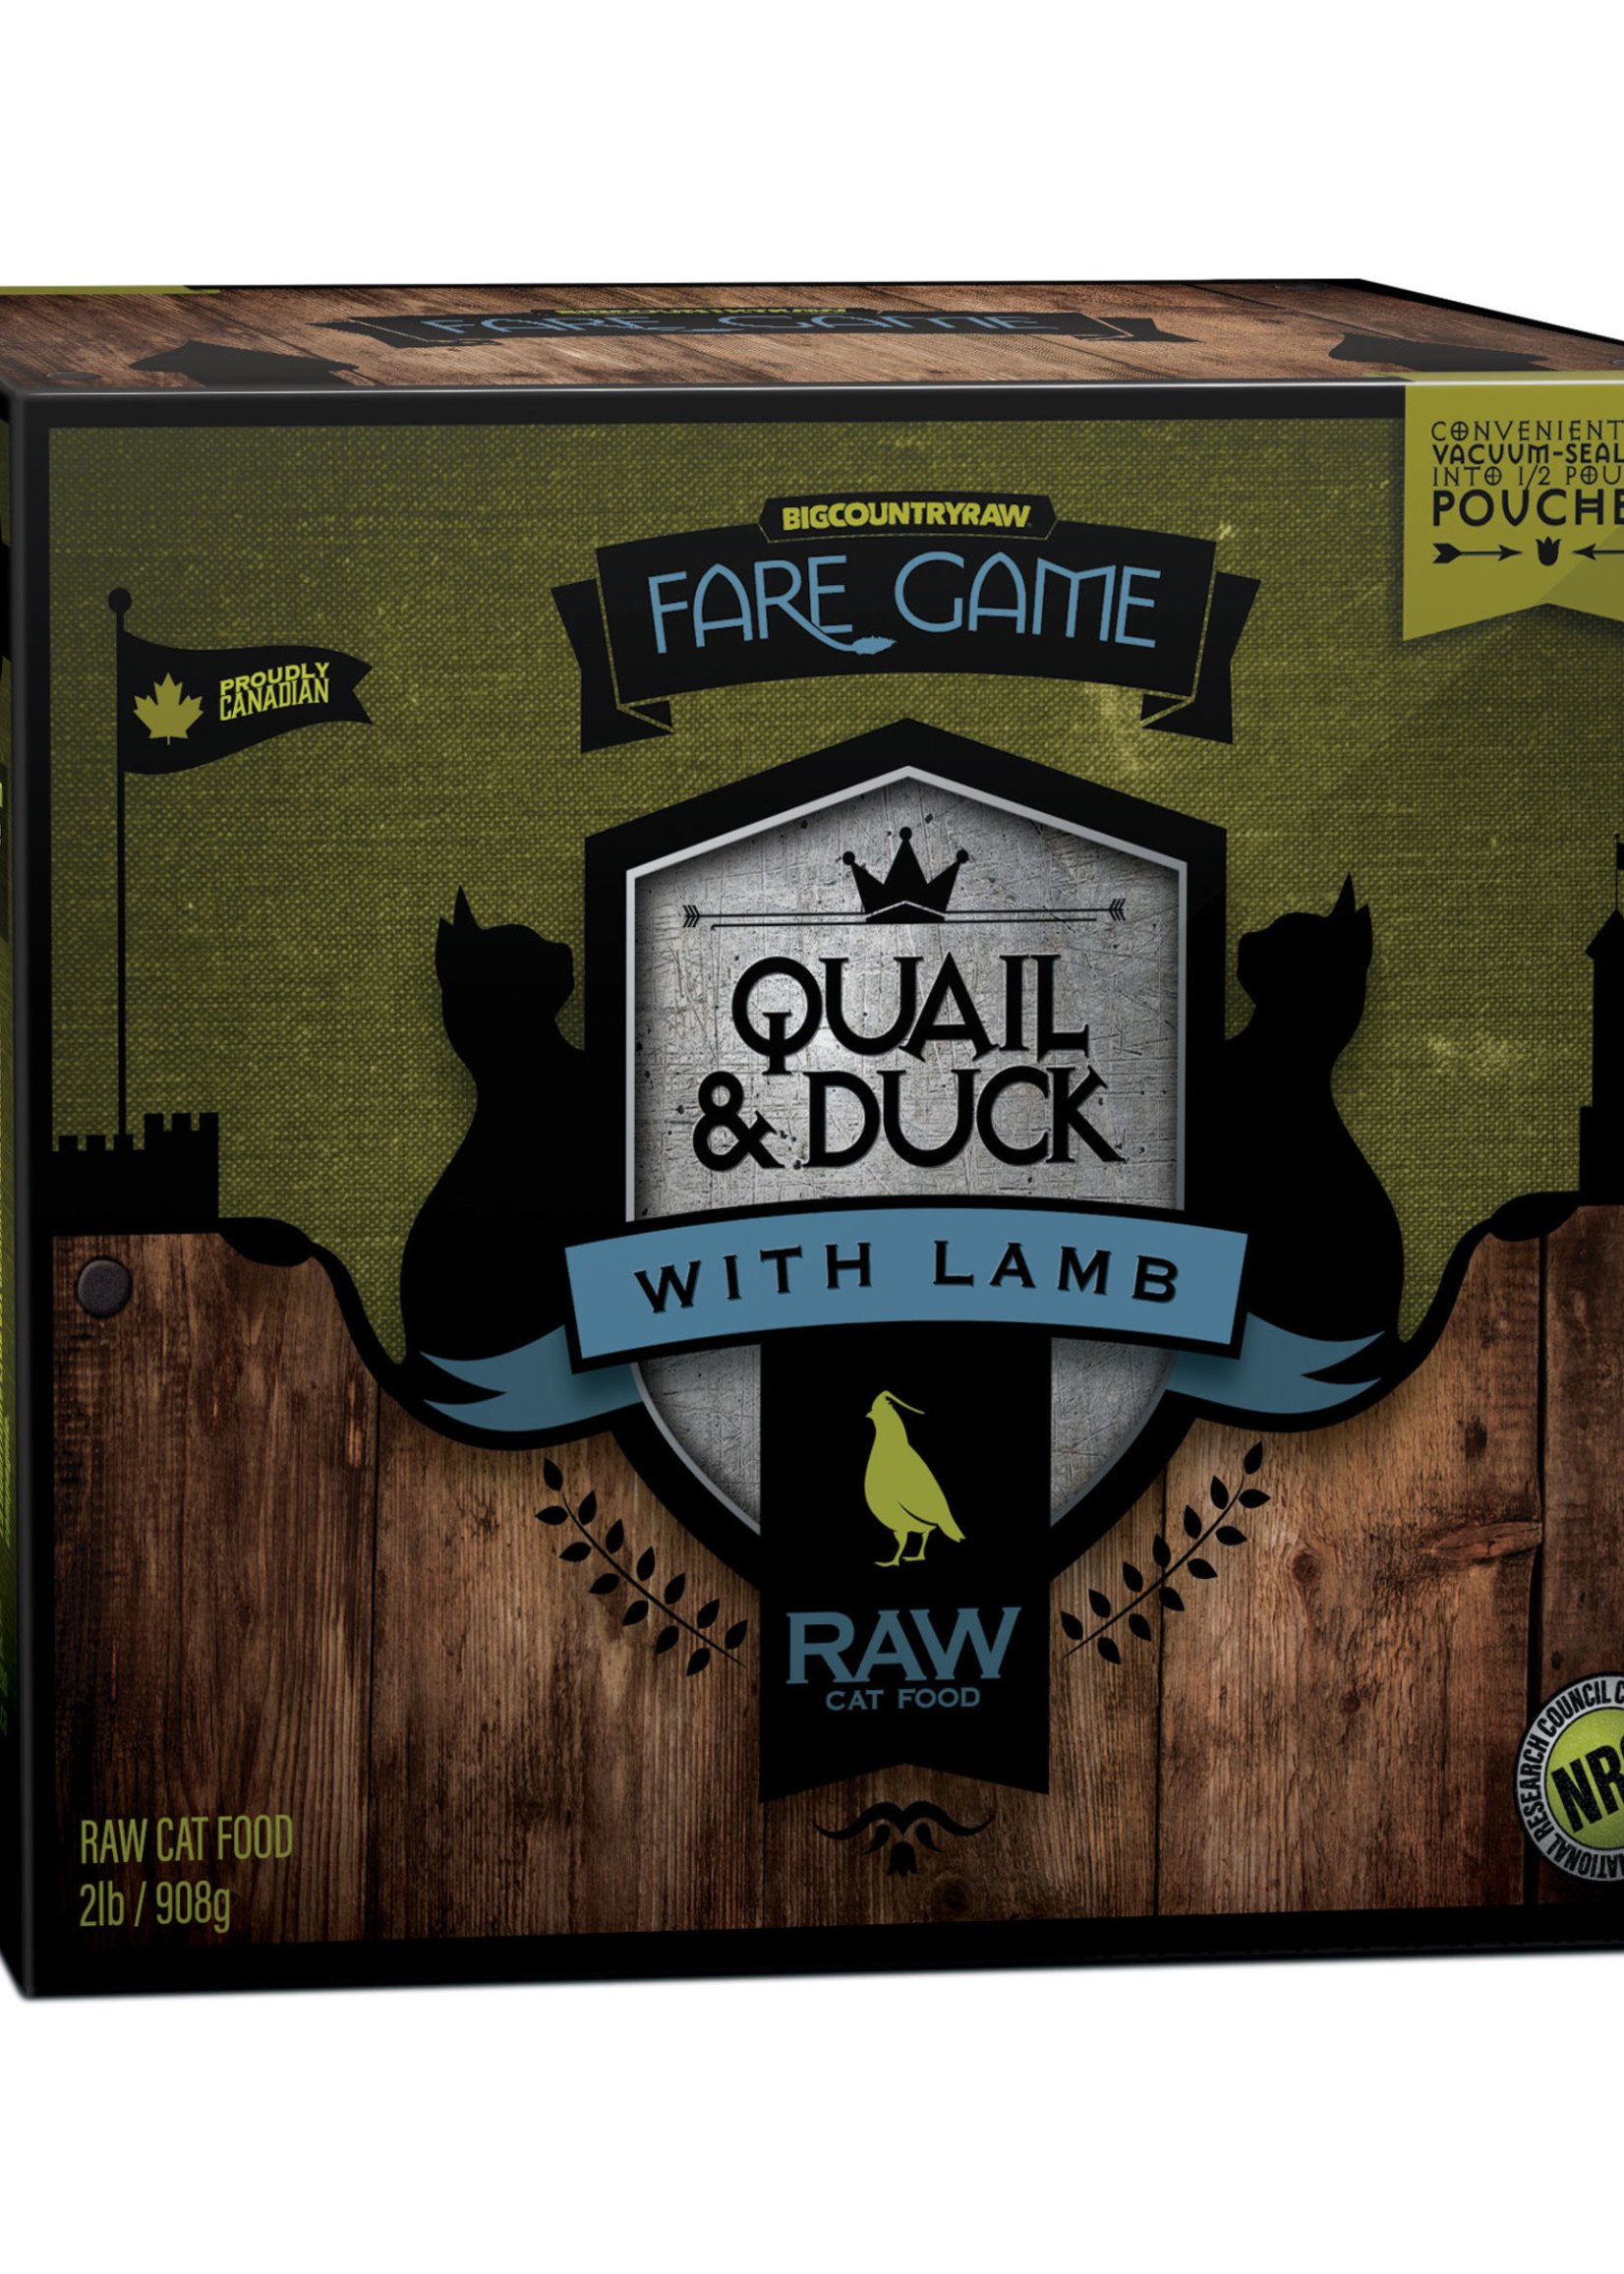 Fare Game Fare Game Quail and Duck with Lamb 2lbs